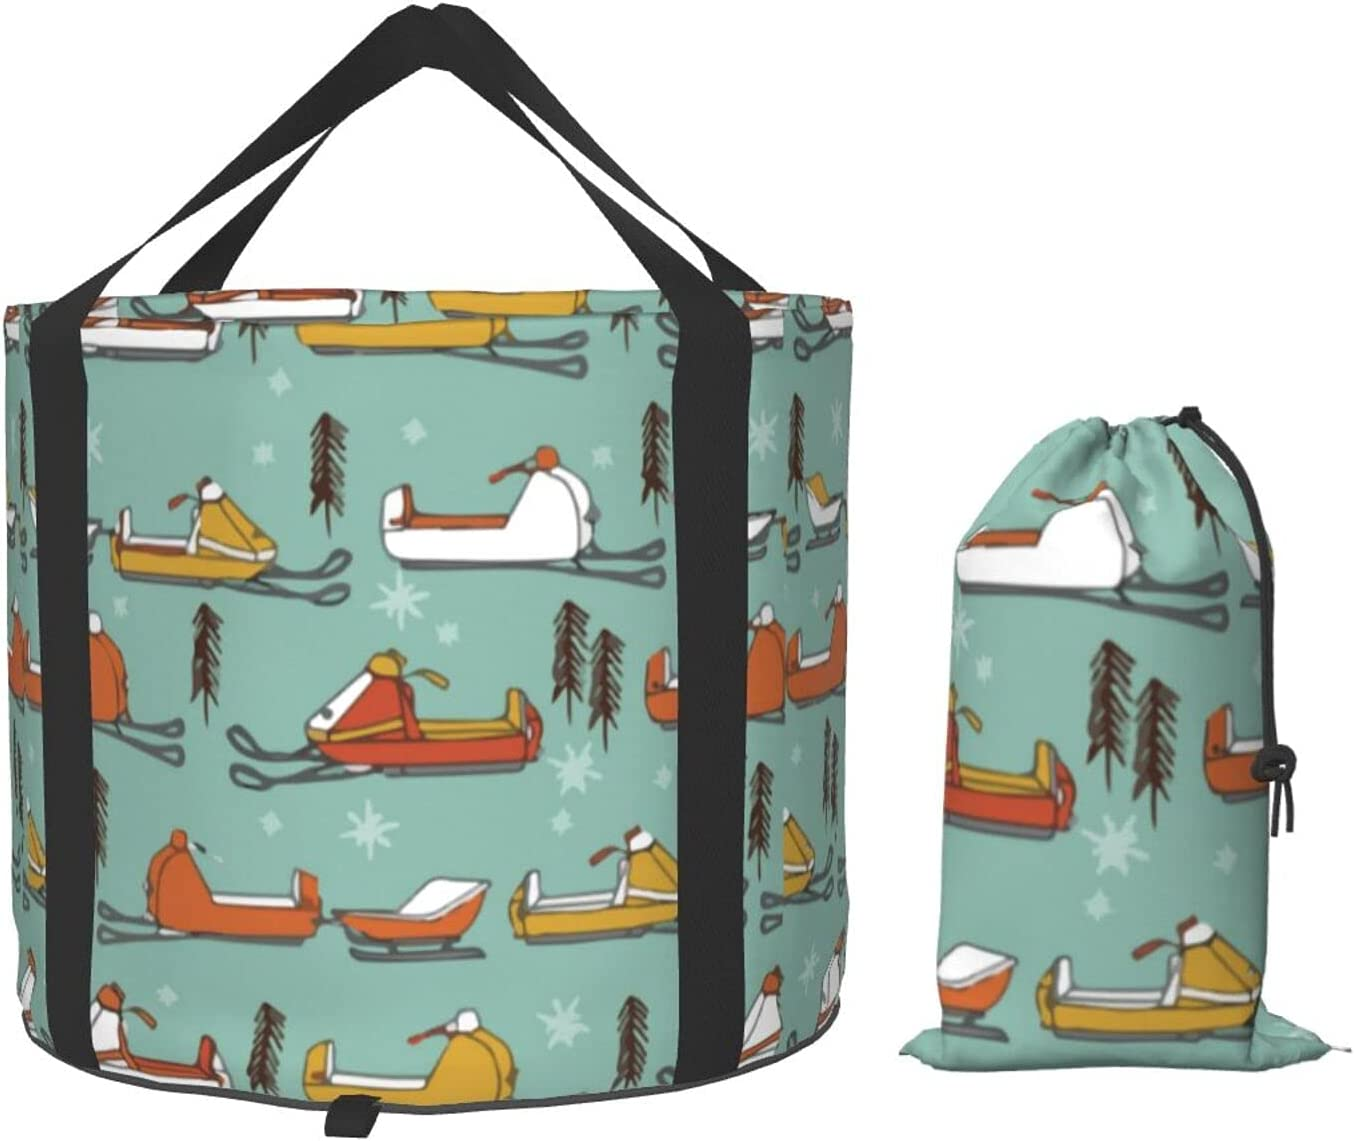 Multifunctional Portable Collapsible Bucket Vintage Snowmobiles Sales of SALE items from new works Outlet sale feature